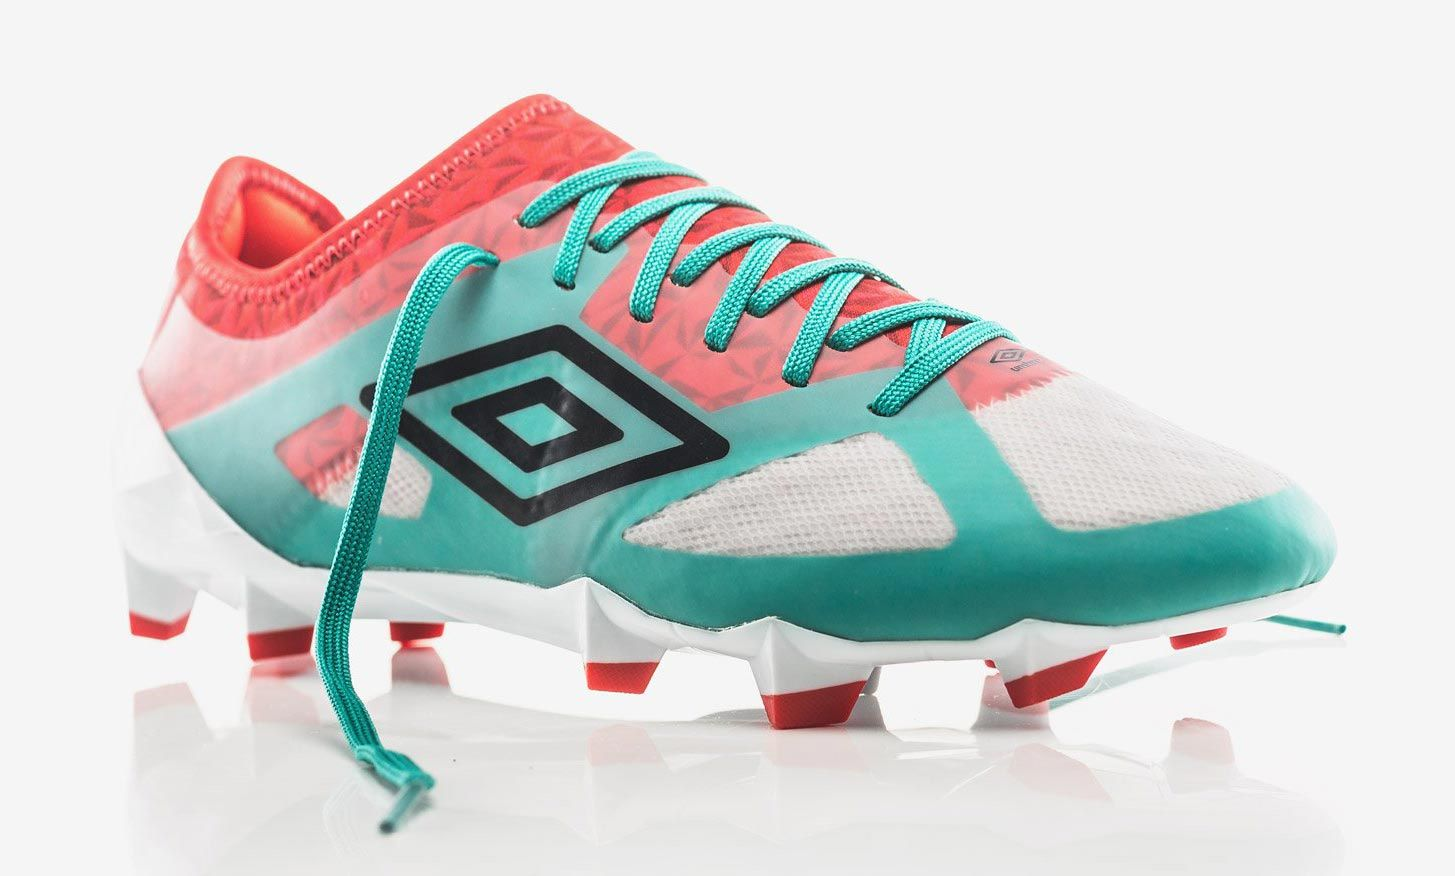 The third gen Umbro Velocita boots get introduced with a